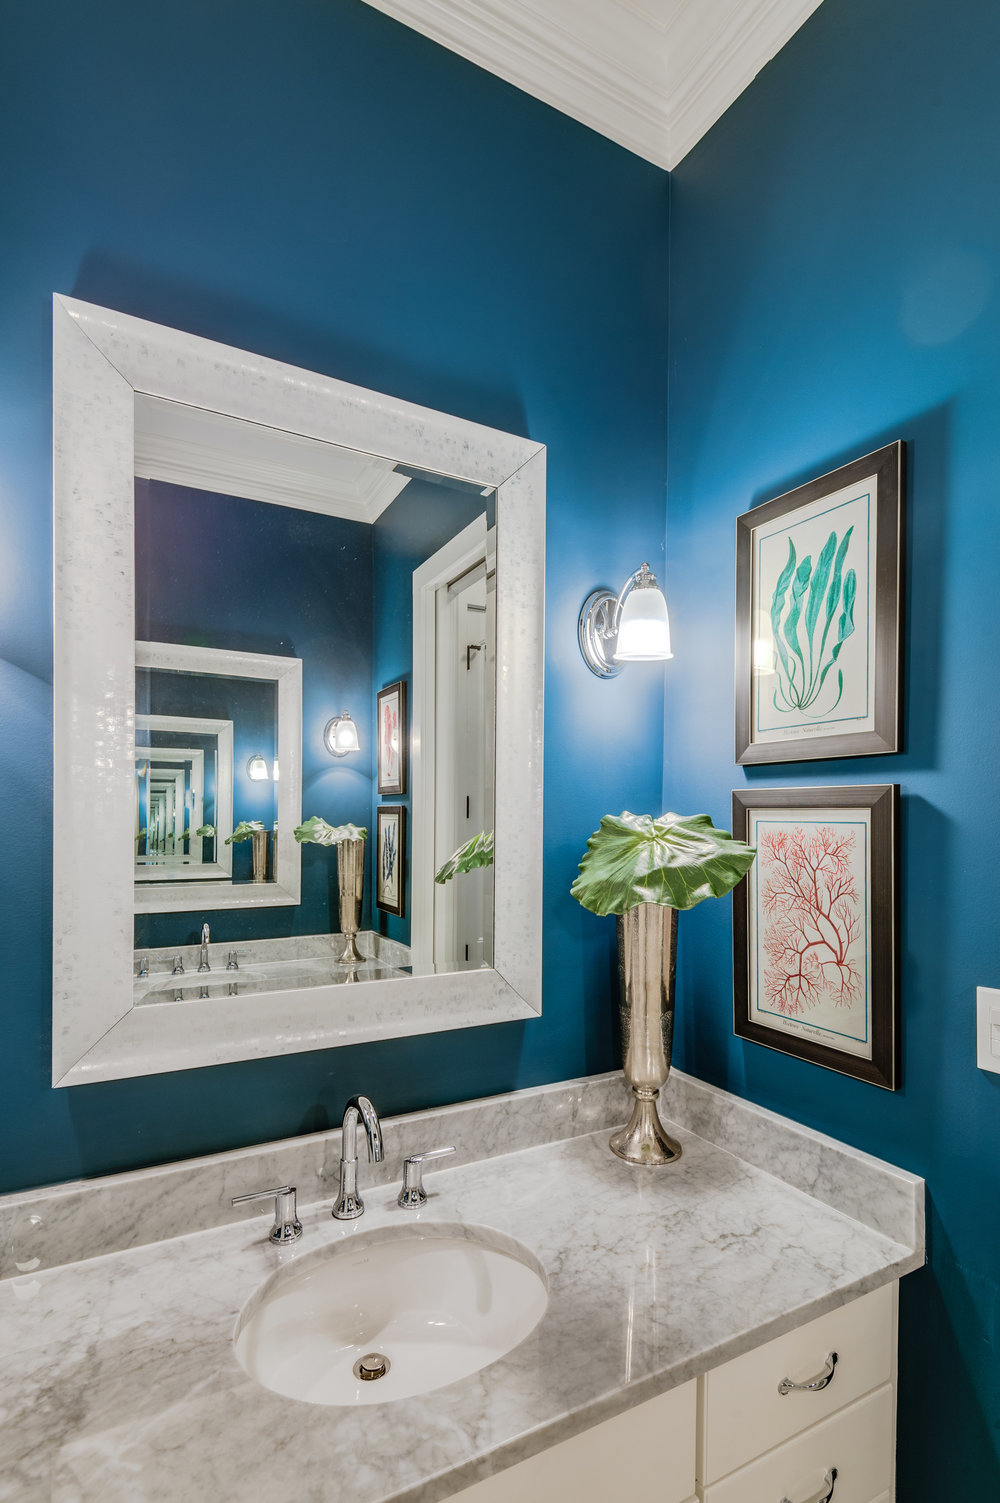 KHB Interiors powder room uptown garden district interior designer metairie decorator.jpg